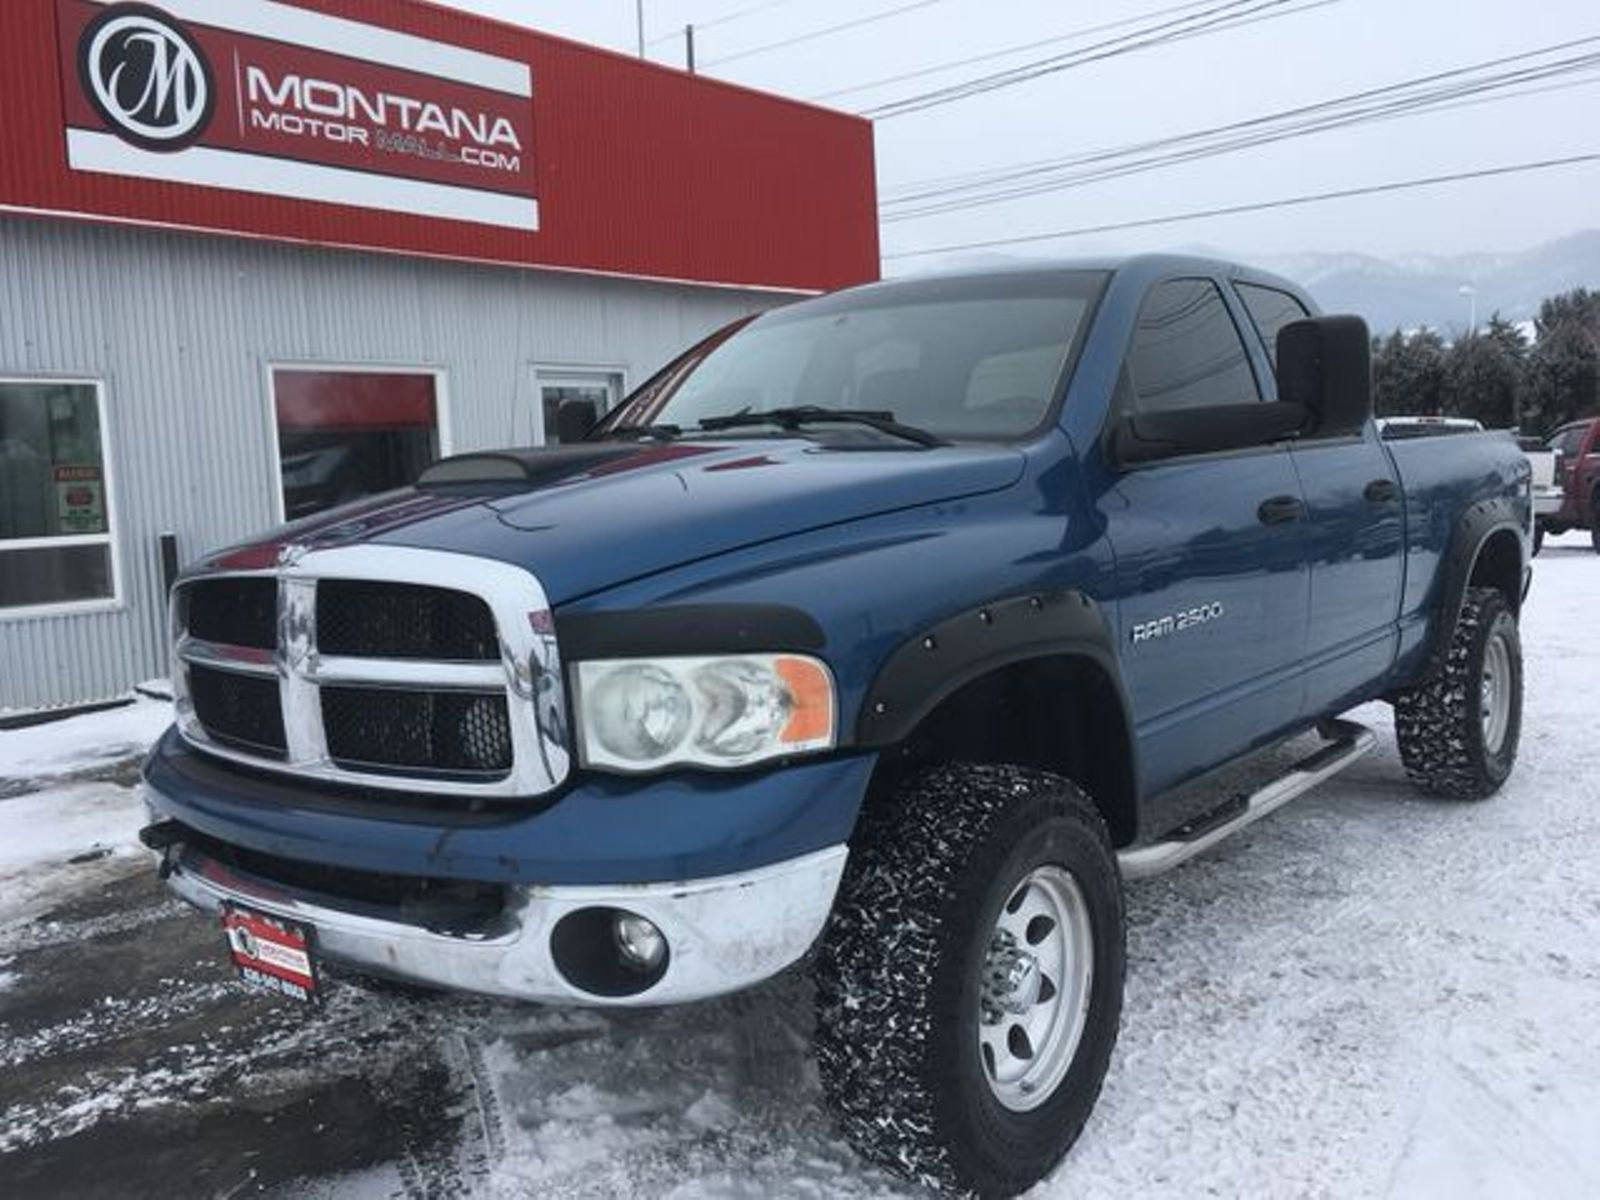 small resolution of 2003 dodge ram 2500 slt city montana montana motor mall in montana